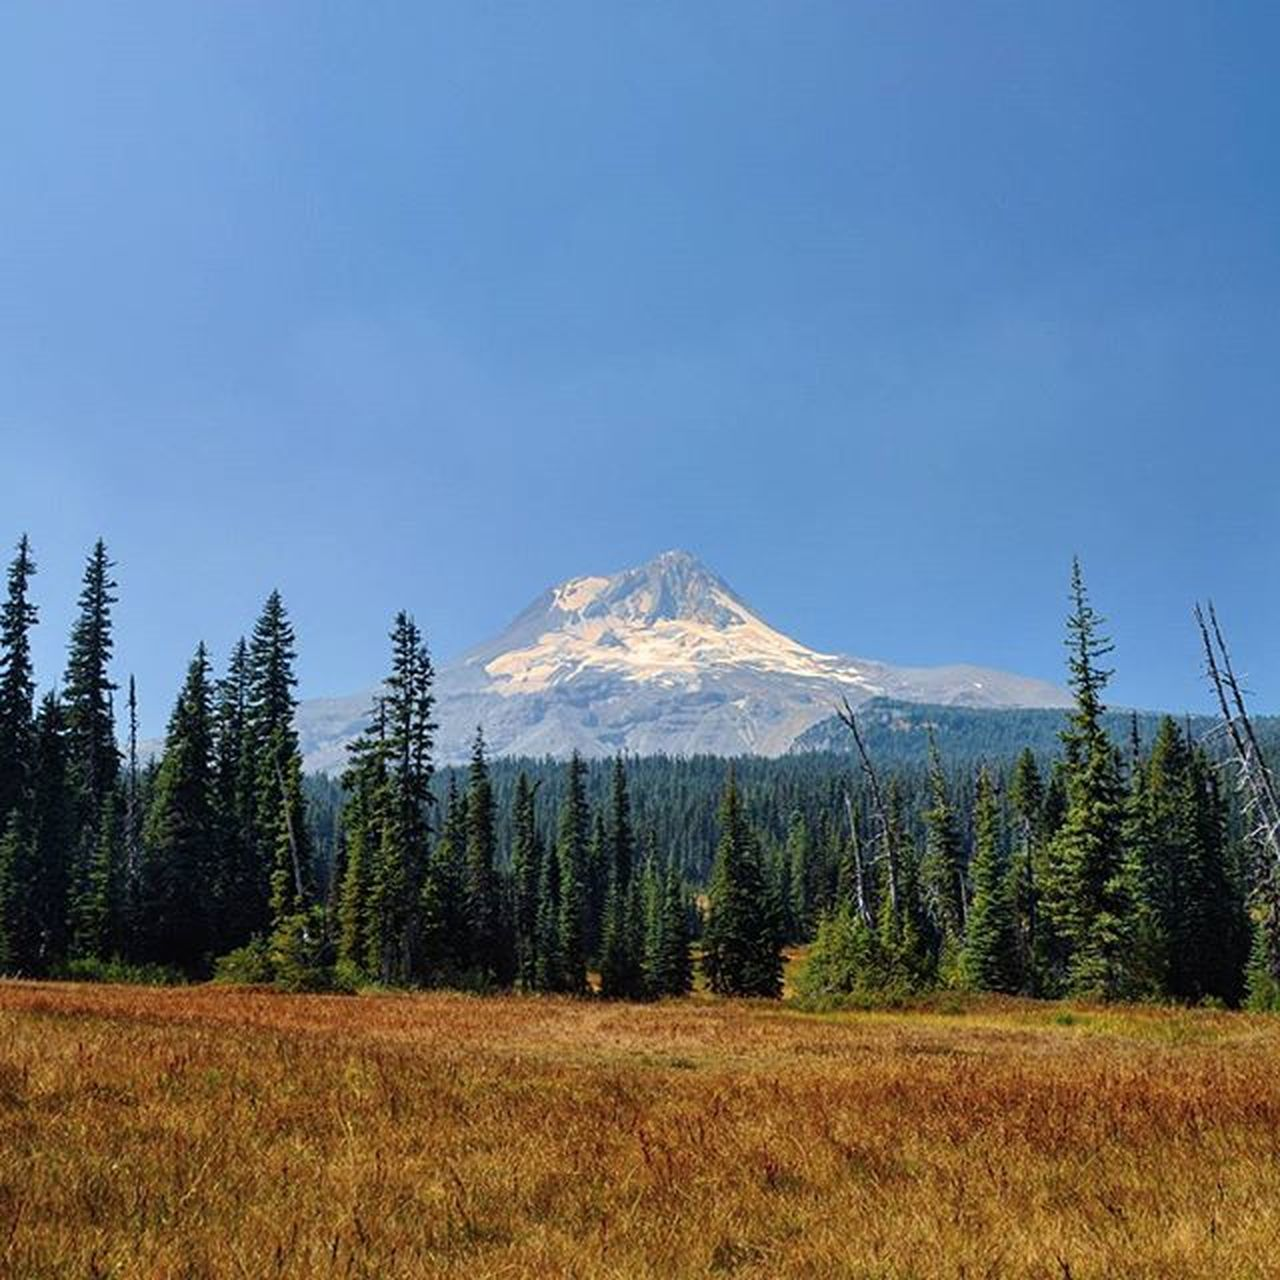 Mount Hood from Elk Meadows. MtHood Mthoodnationalforest Mounthood Oregonnw Oregonexplored Oregon Northwest Upperleftusa Upperleft Pacificnorthwest PNW Wilderness Forest Meadow Elkmeadows Hiking Golivexplore Mountain Mountains Volcano Volcanic